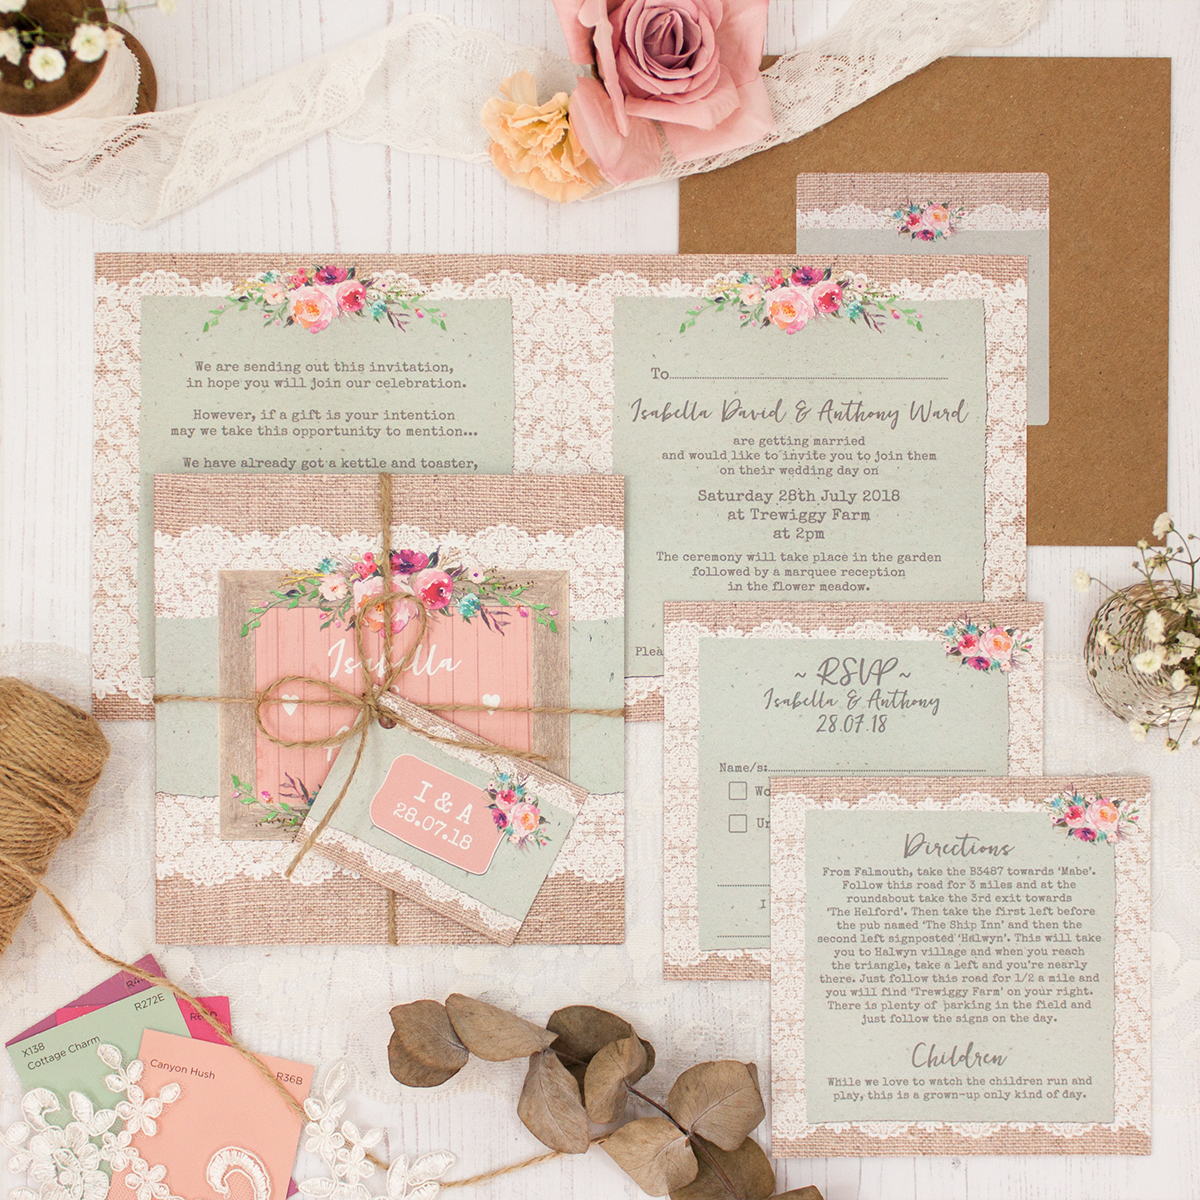 Rustic Farmhouse Wedding showing invitation